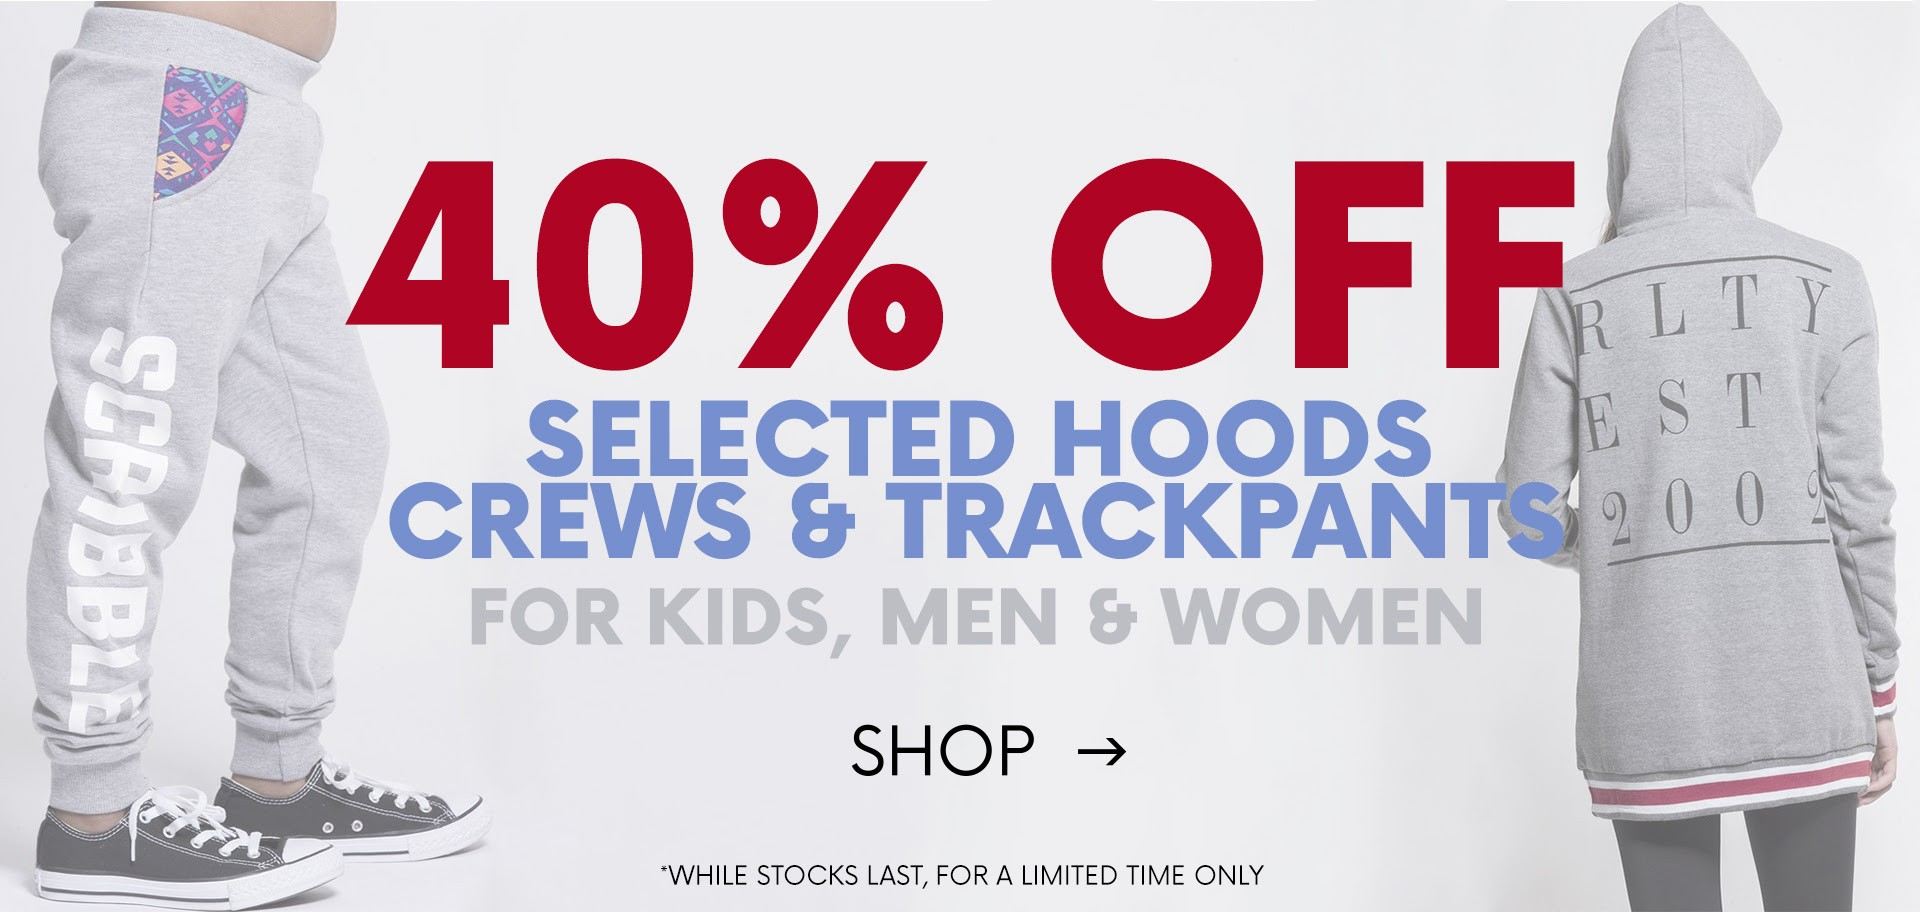 Bargain - 40% OFF - Selected Hoods, Crews & Trackpants @ Red Rat